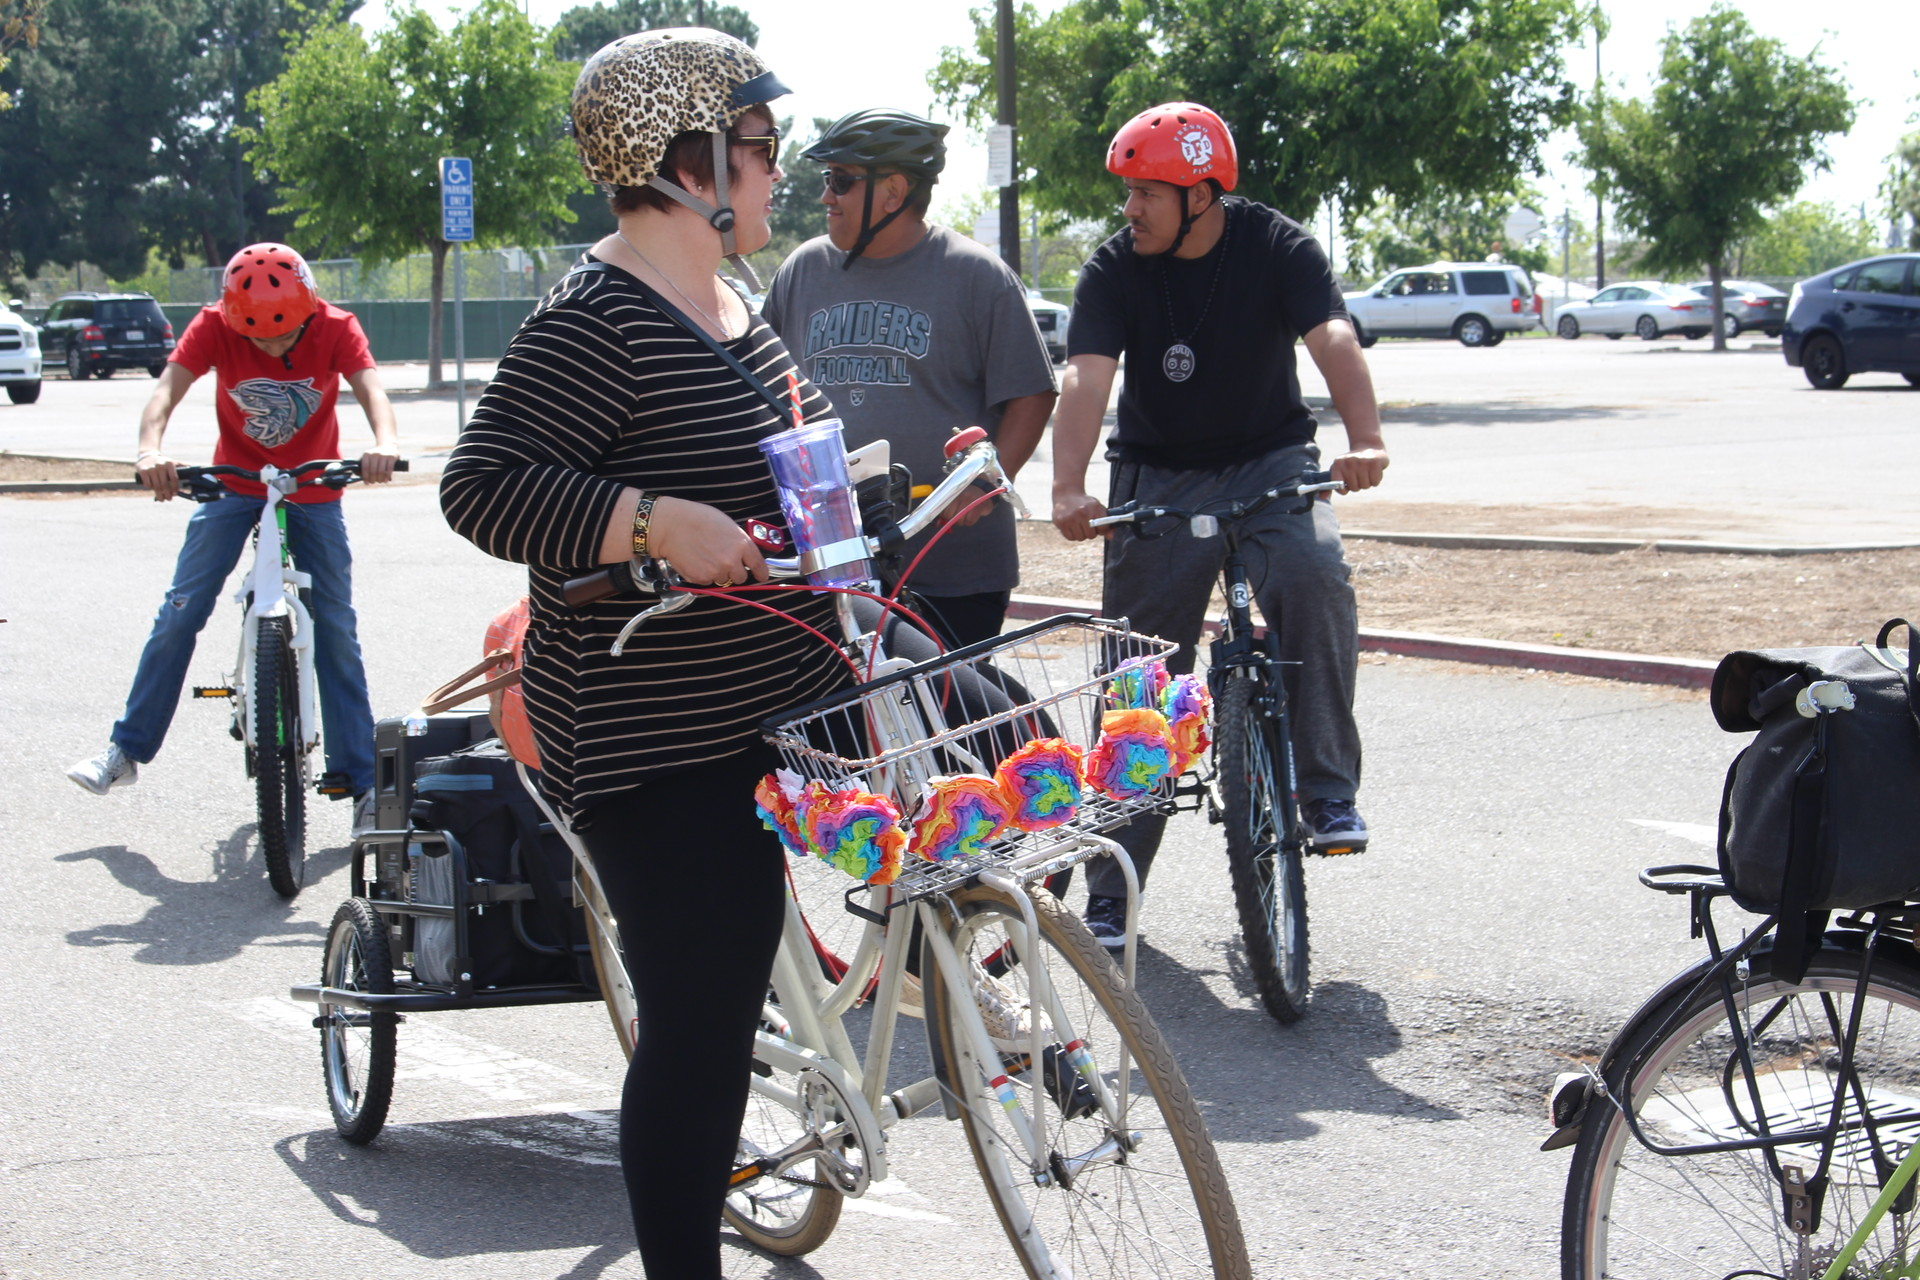 Genoveva Islas prepares to begin a group bike ride in Fresno. Islas directs Cultiva la Salud, a local non-profit pushing to create 'healthier environments' in Fresno and other parts of the San Joaquin Valley as a way to prevent chronic illnesses.